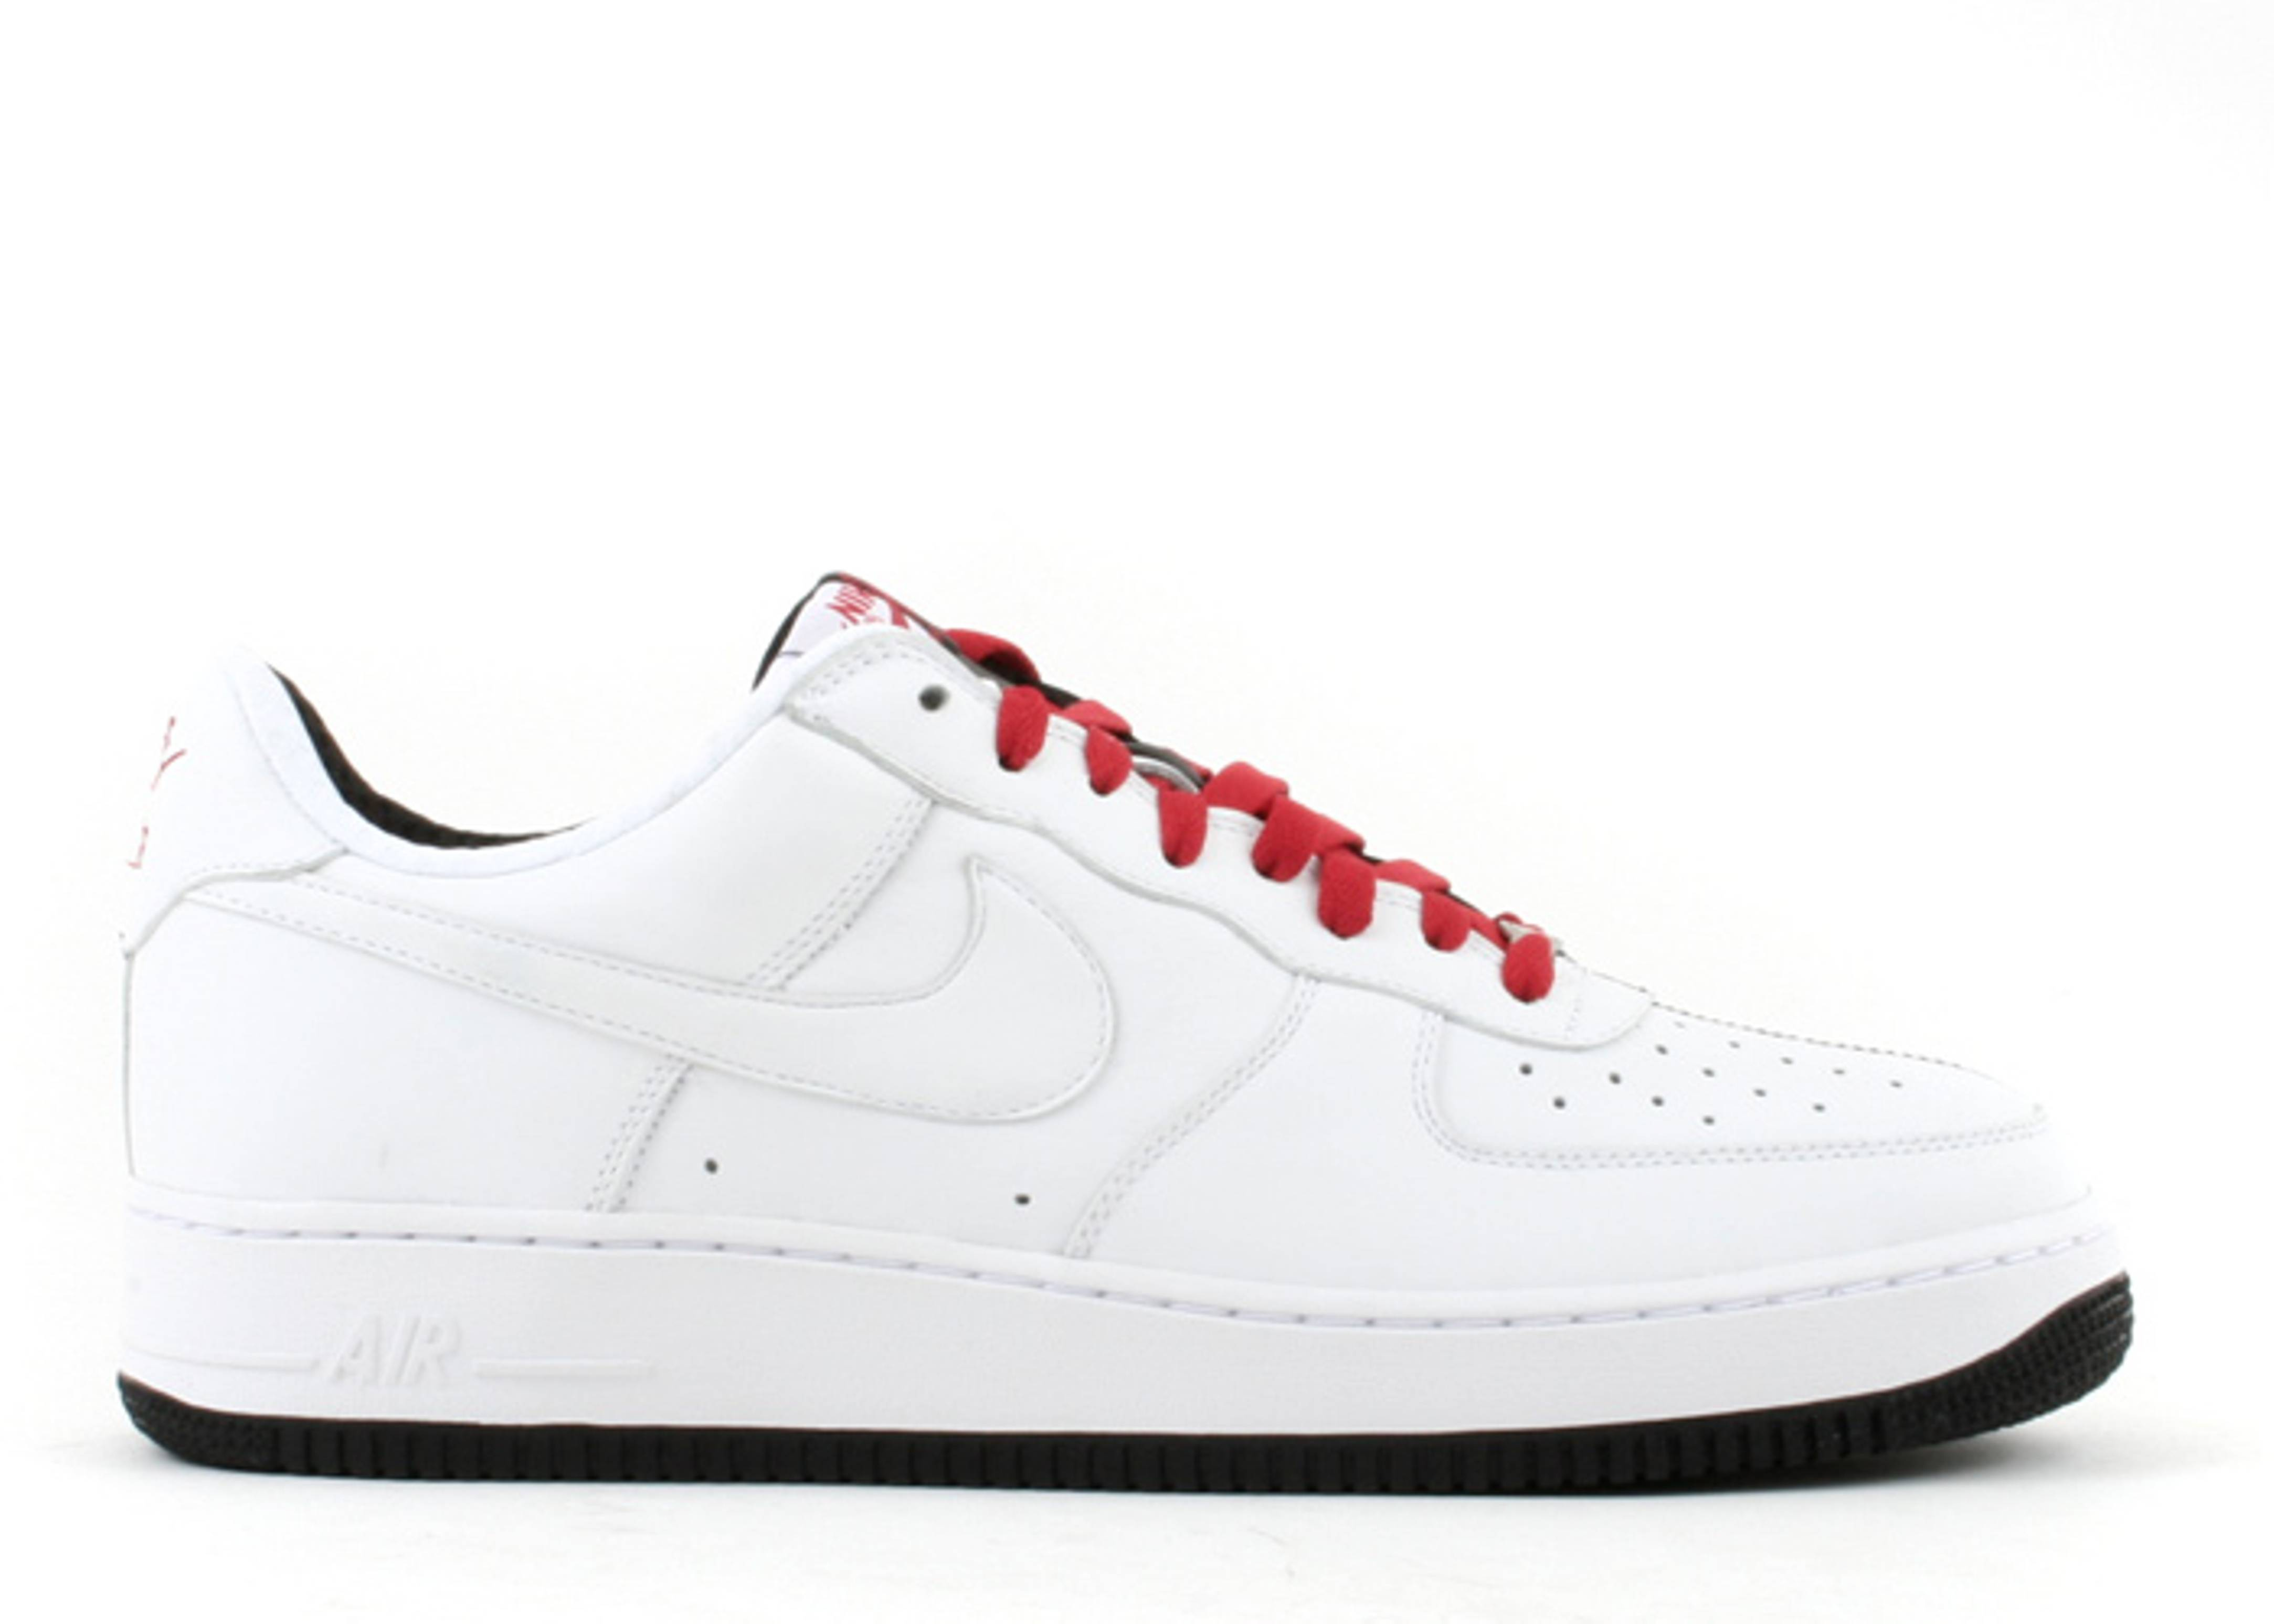 Nike Air Force 1 Low Scarface Sneakers (White/Black-Varsity Red)